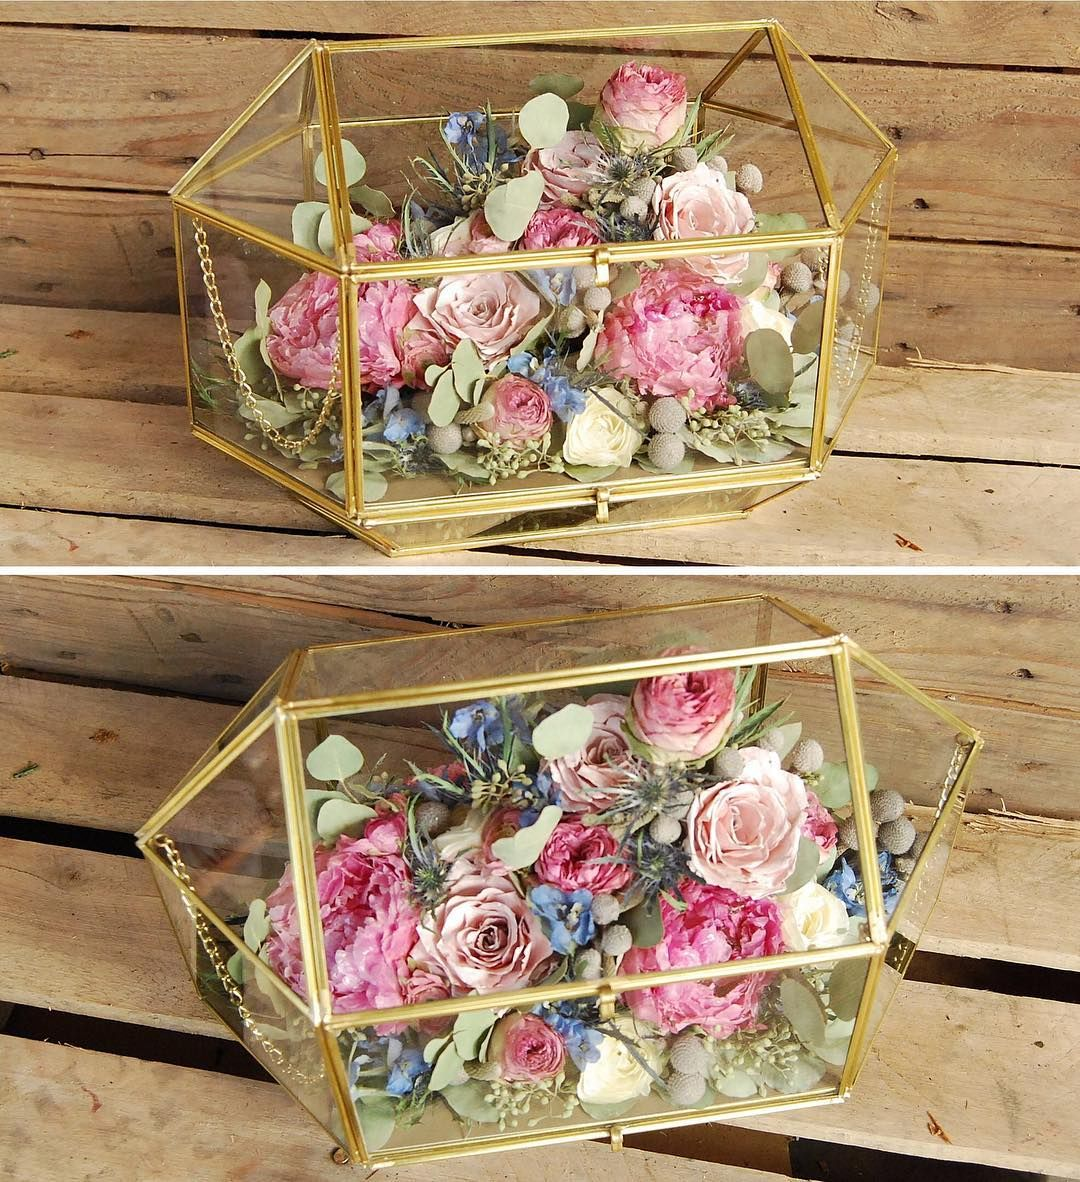 We created this clients bouquet preservation design in yet